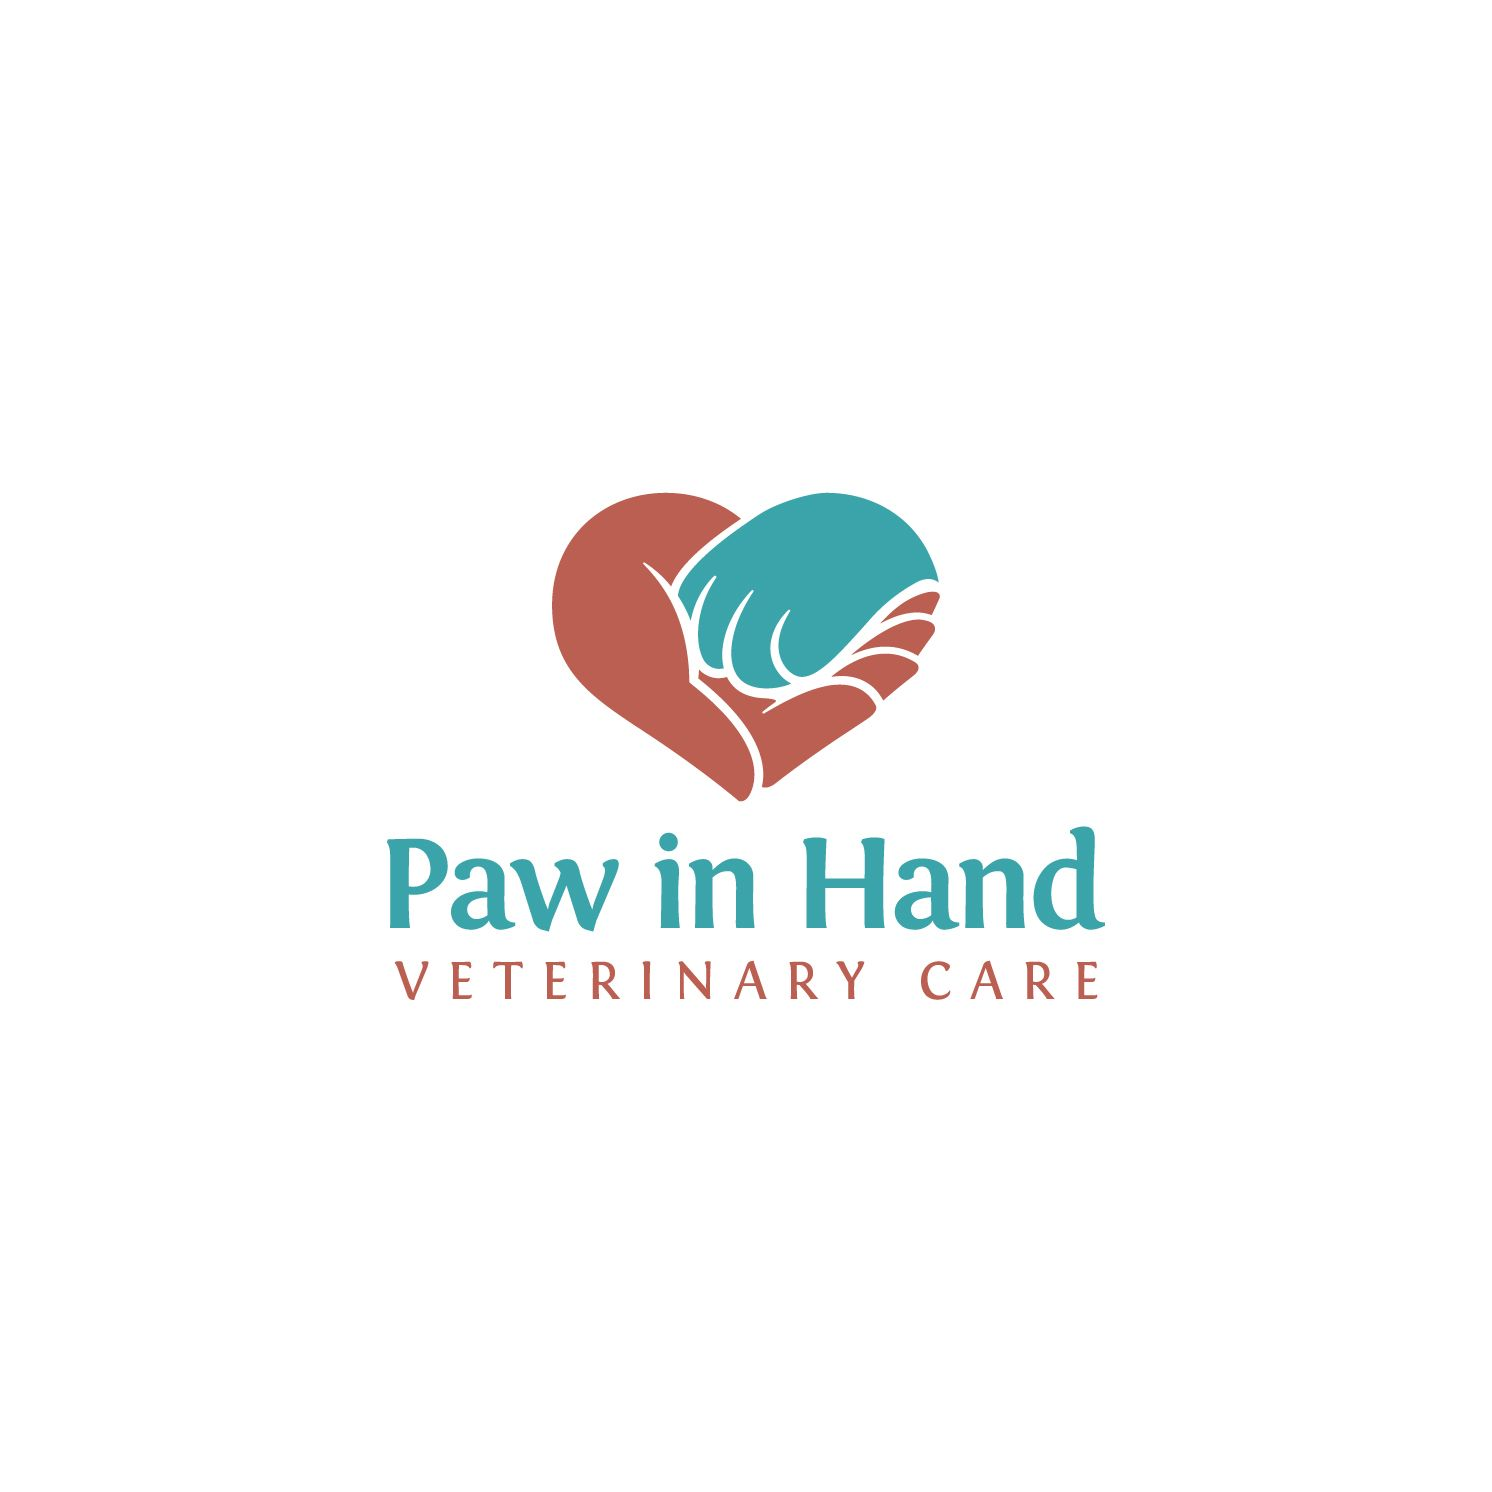 Love Heart Shape Combined With Pet Cat Hand And Human Hand Design 75 By Danoveight Small Vet Clinic Needs A L Pet Logo Design Dog Logo Design Hand Logo